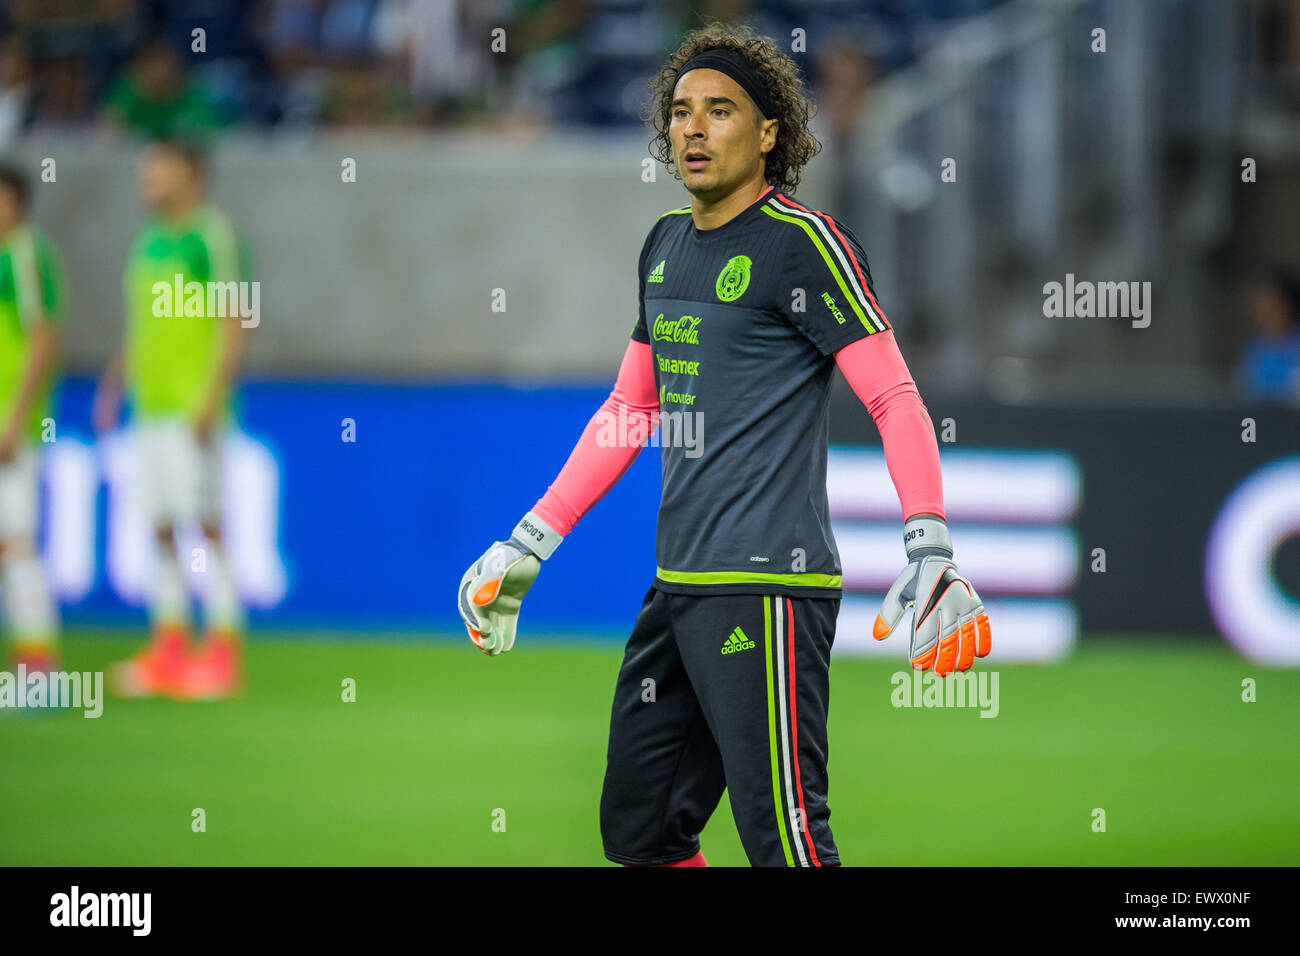 98e873e6a94 Mexico Goalkeeper Stock Photos & Mexico Goalkeeper Stock Images - Alamy